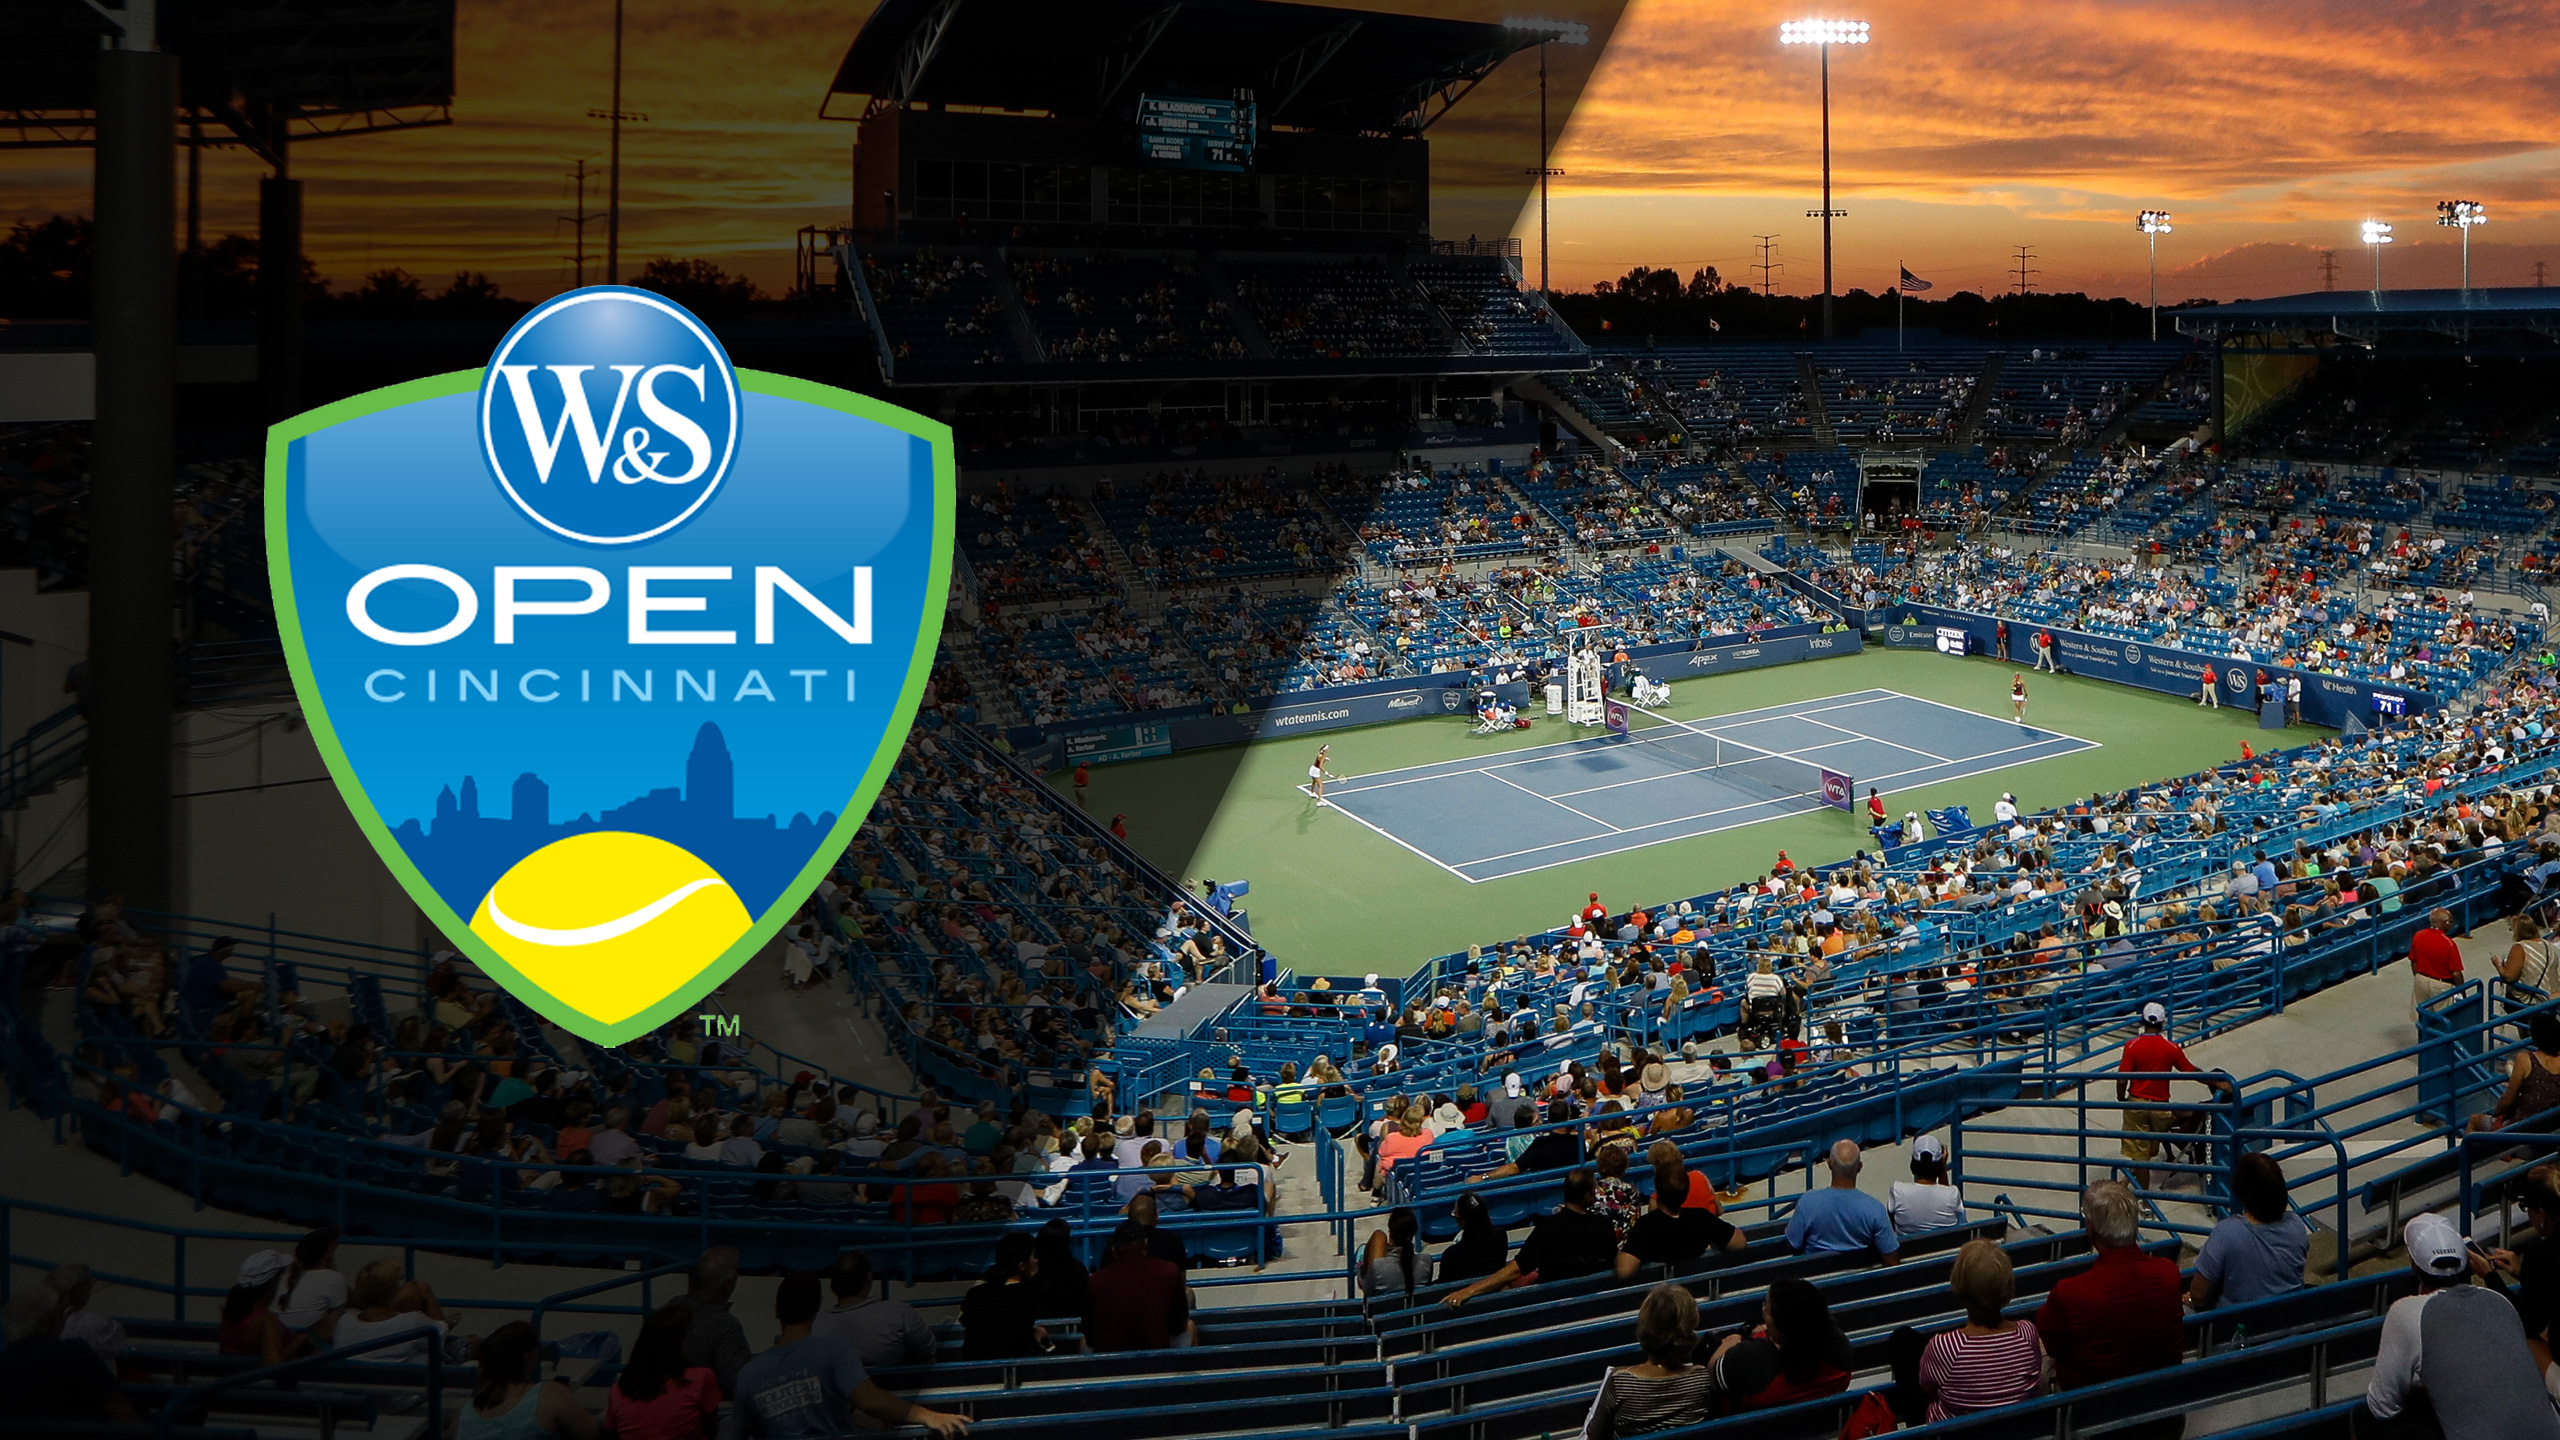 2018 US Open Series - Western & Southern Open (Women's Semifinals & Men's Semifinal #1)